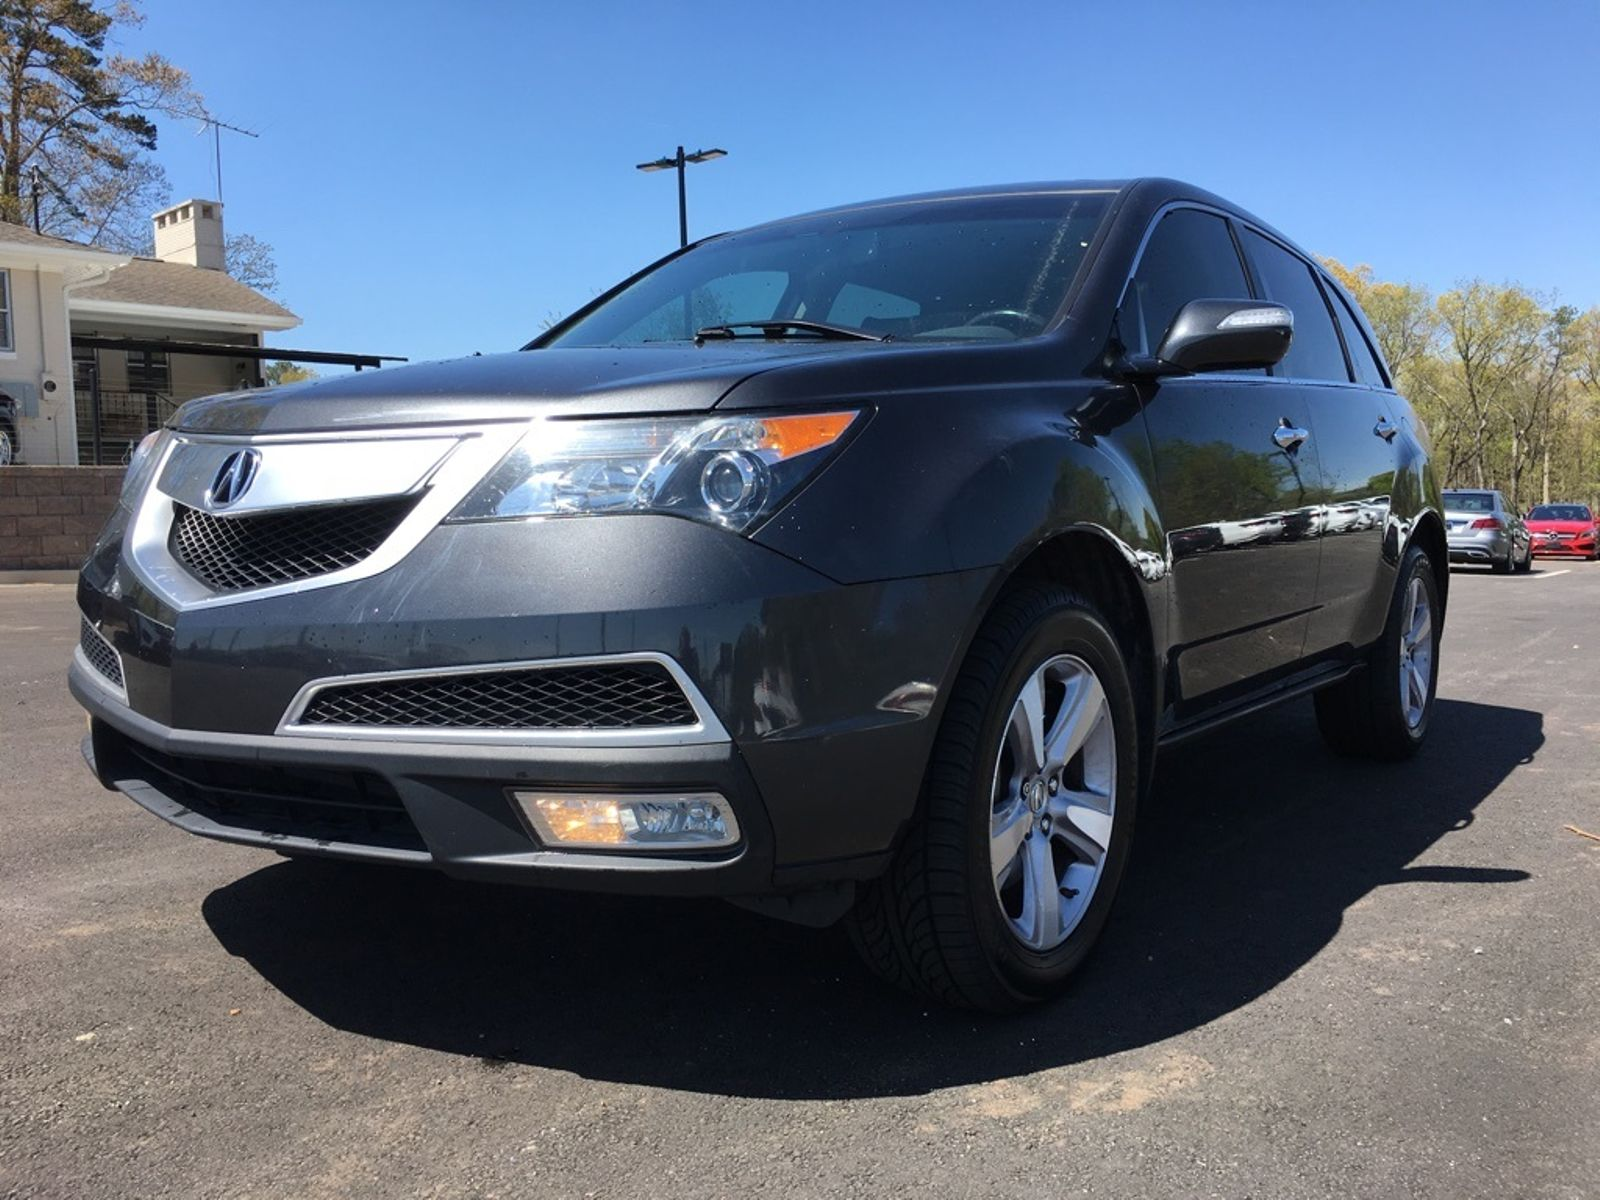 city mdx in ga revo marietta acura automotive malones